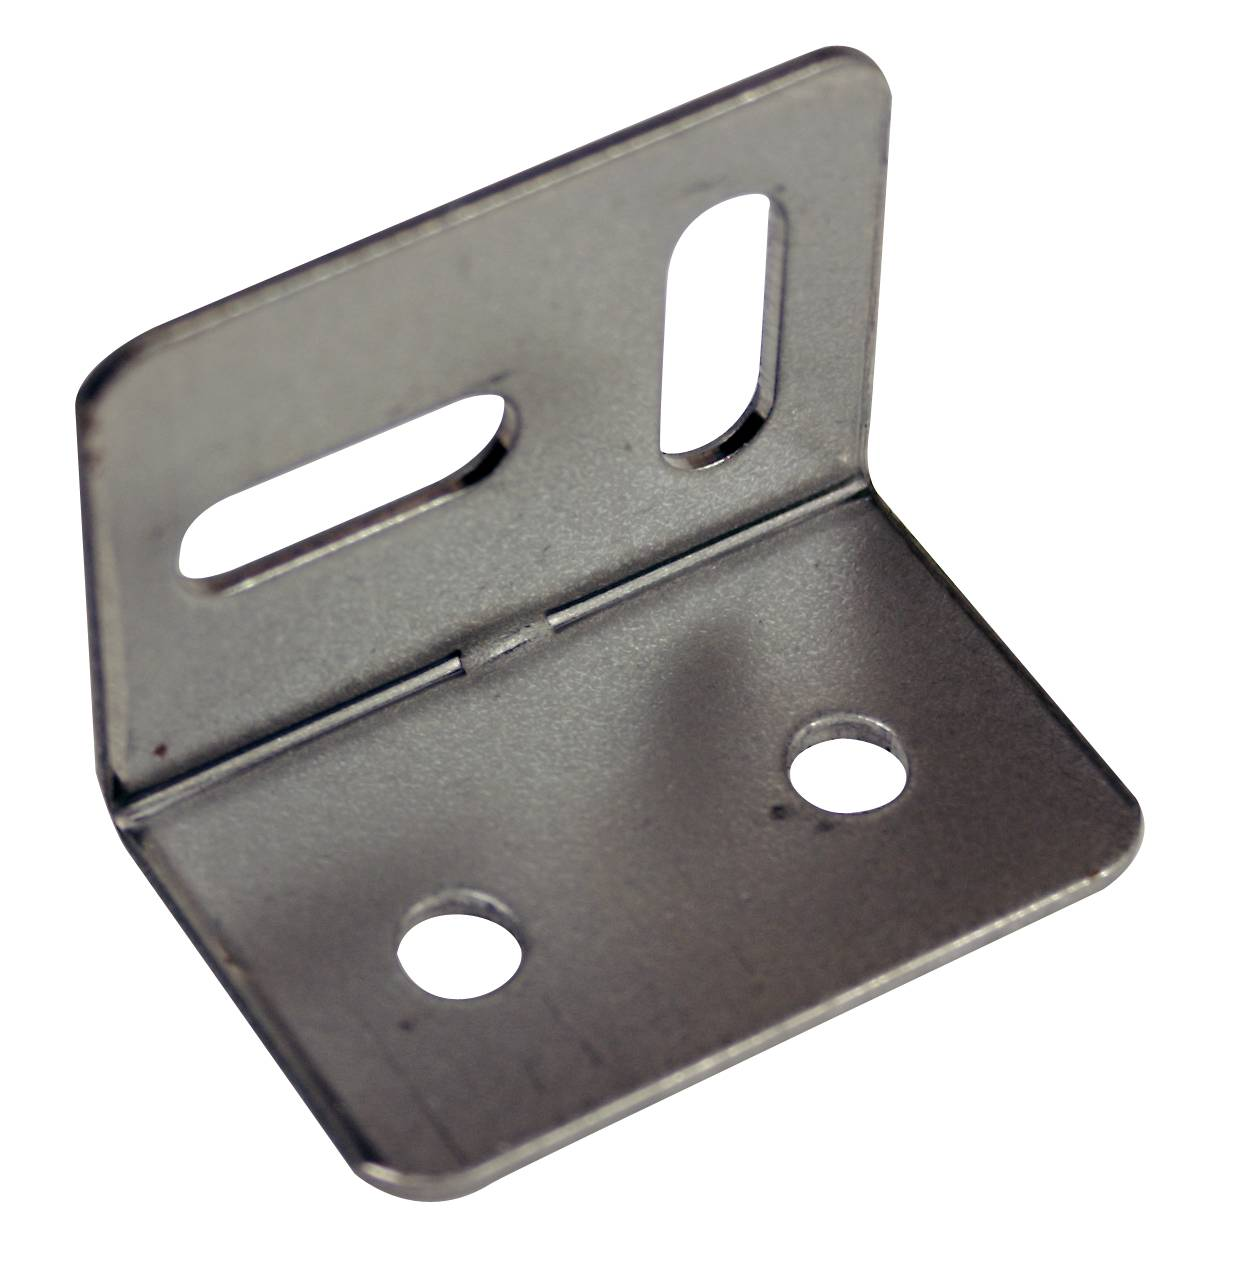 No 315 38 x 25 x 25mm Stretcher Plates